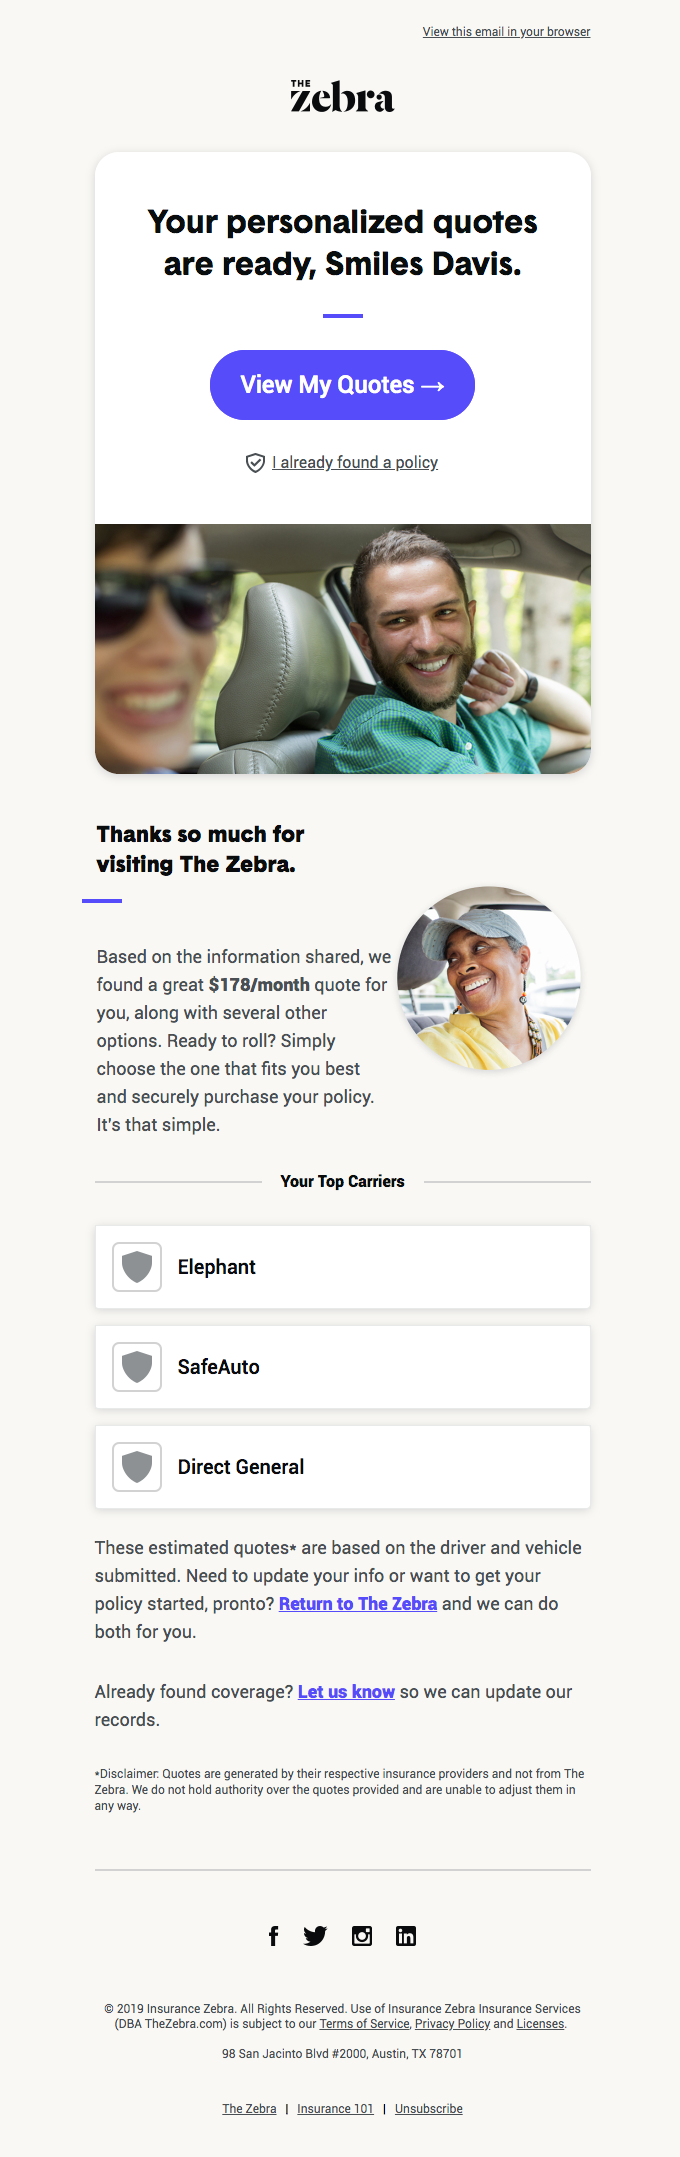 Welcome to TheZebra.com, Smiles Davis. Your quotes are here!